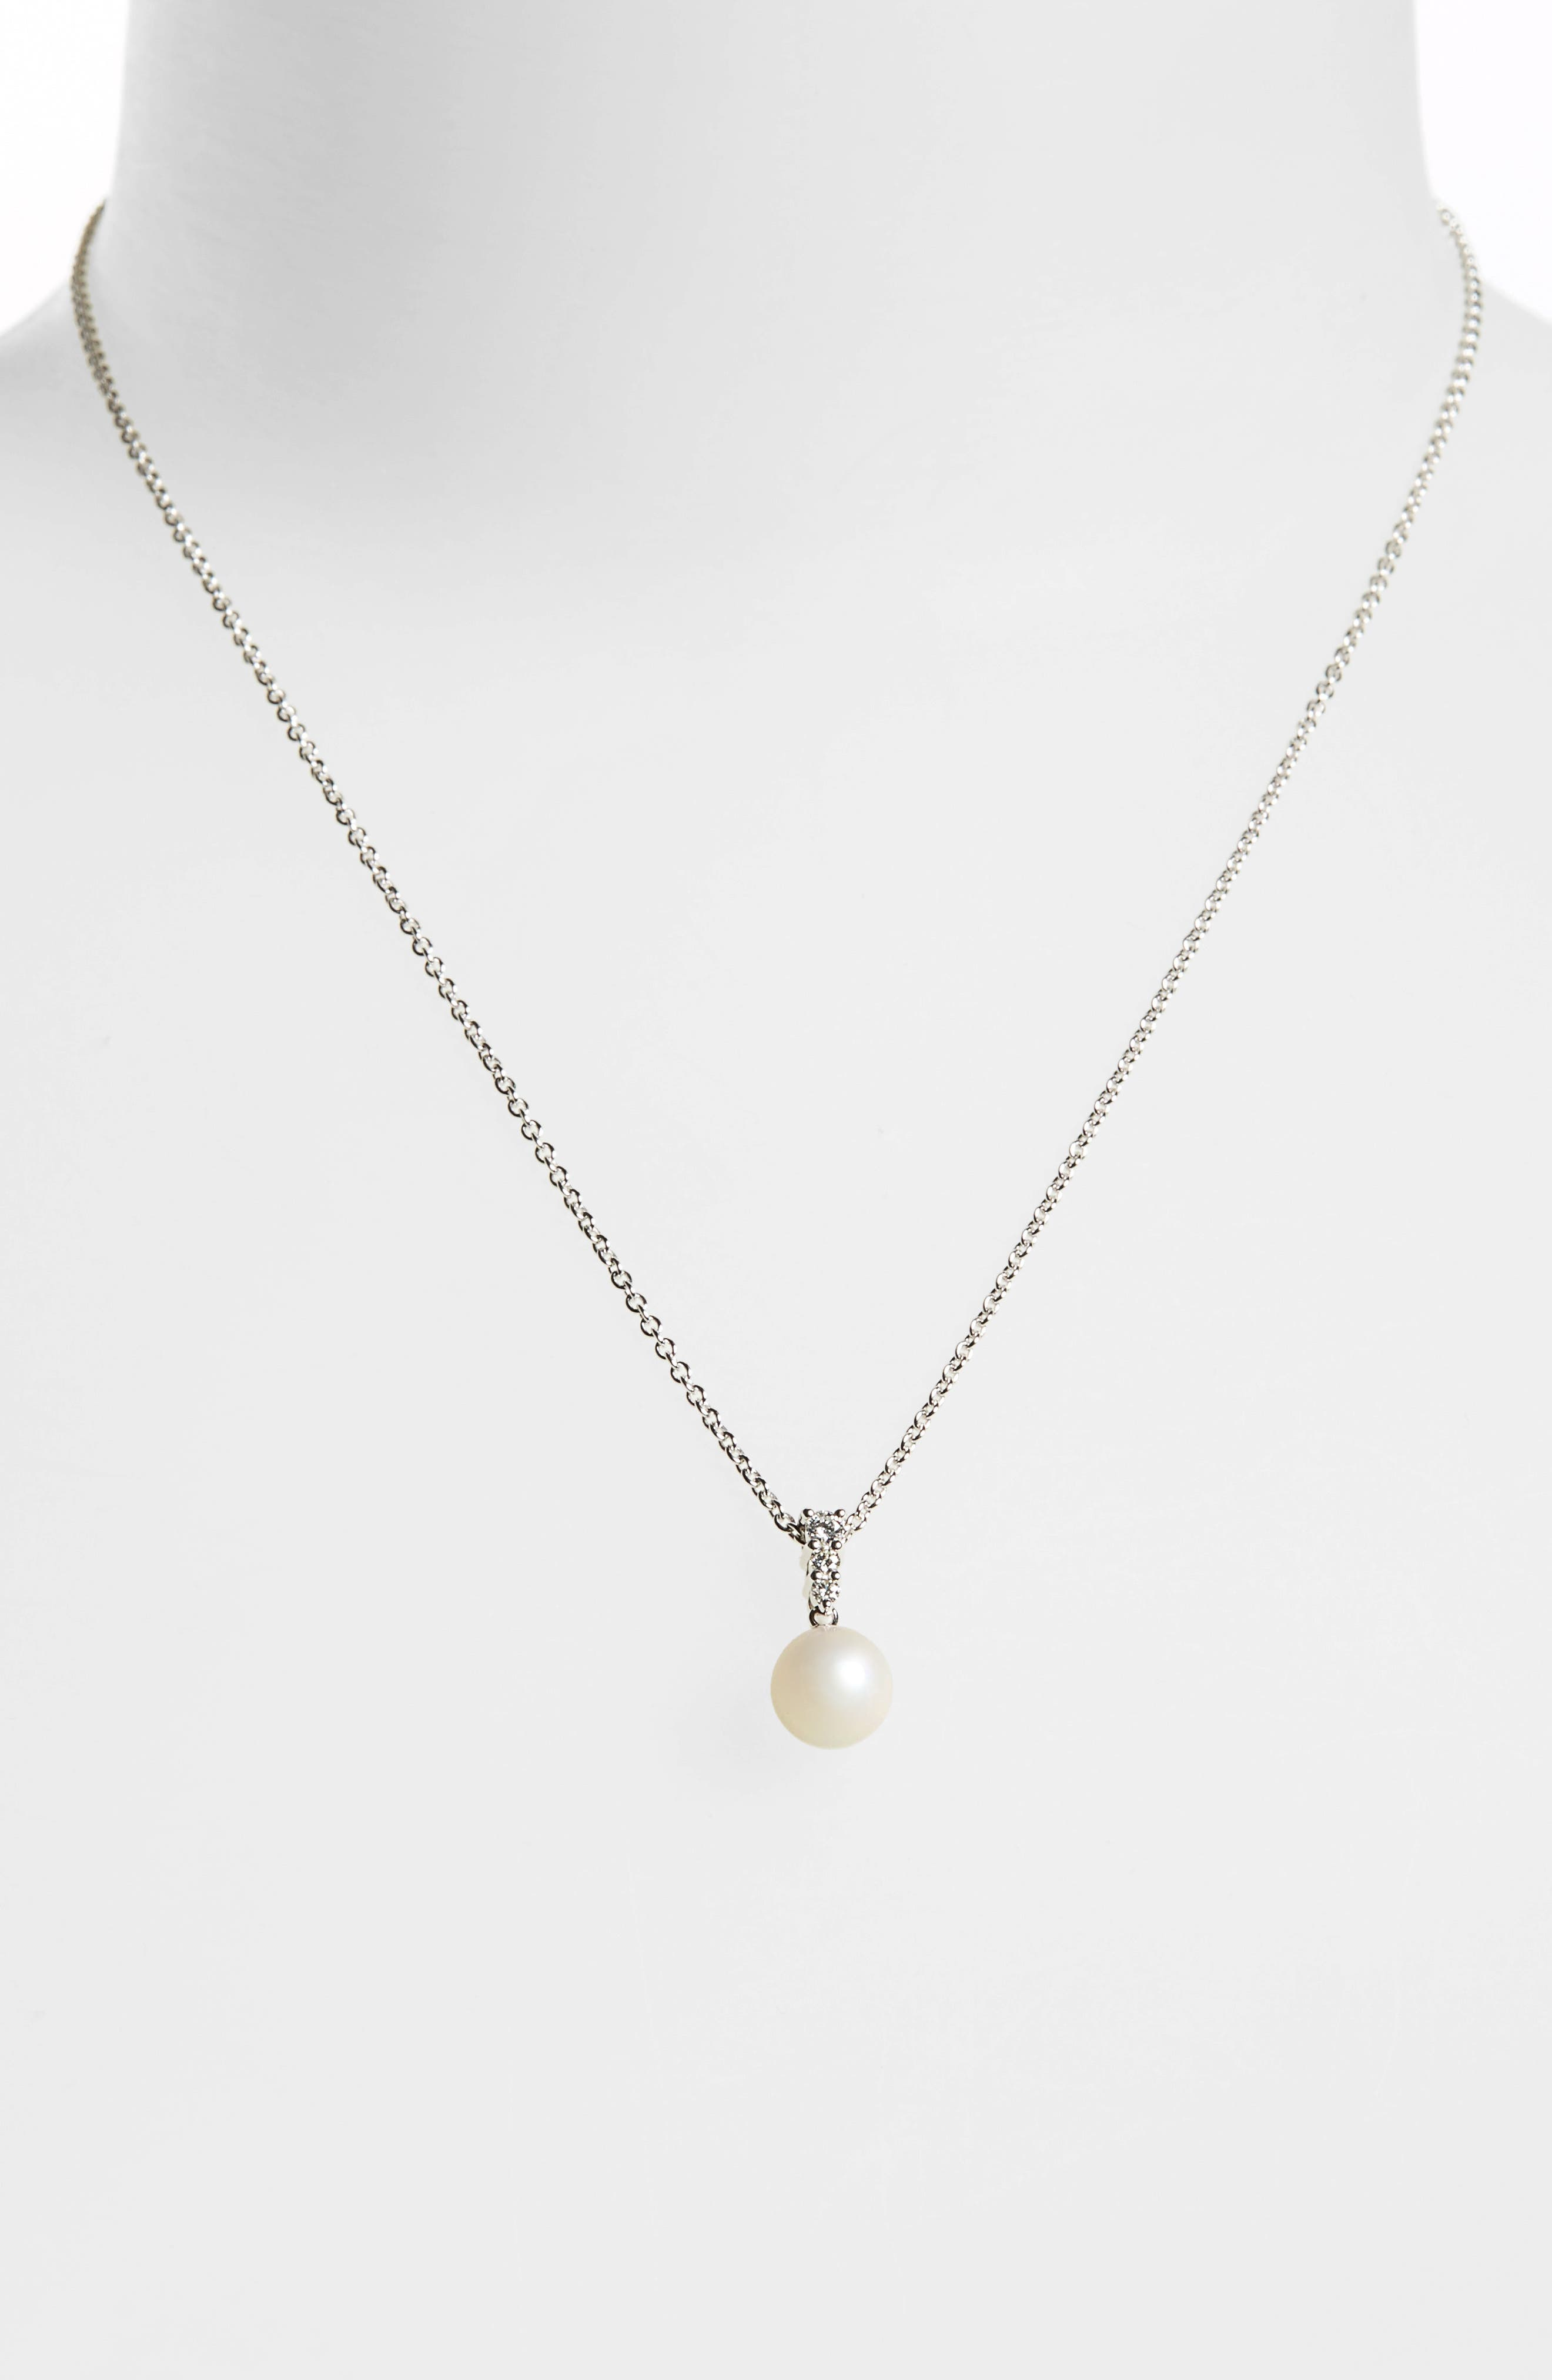 'Morning Dew' Akoya Cultured Pearl & Diamond Pendant Necklace,                             Alternate thumbnail 3, color,                             WHITE GOLD